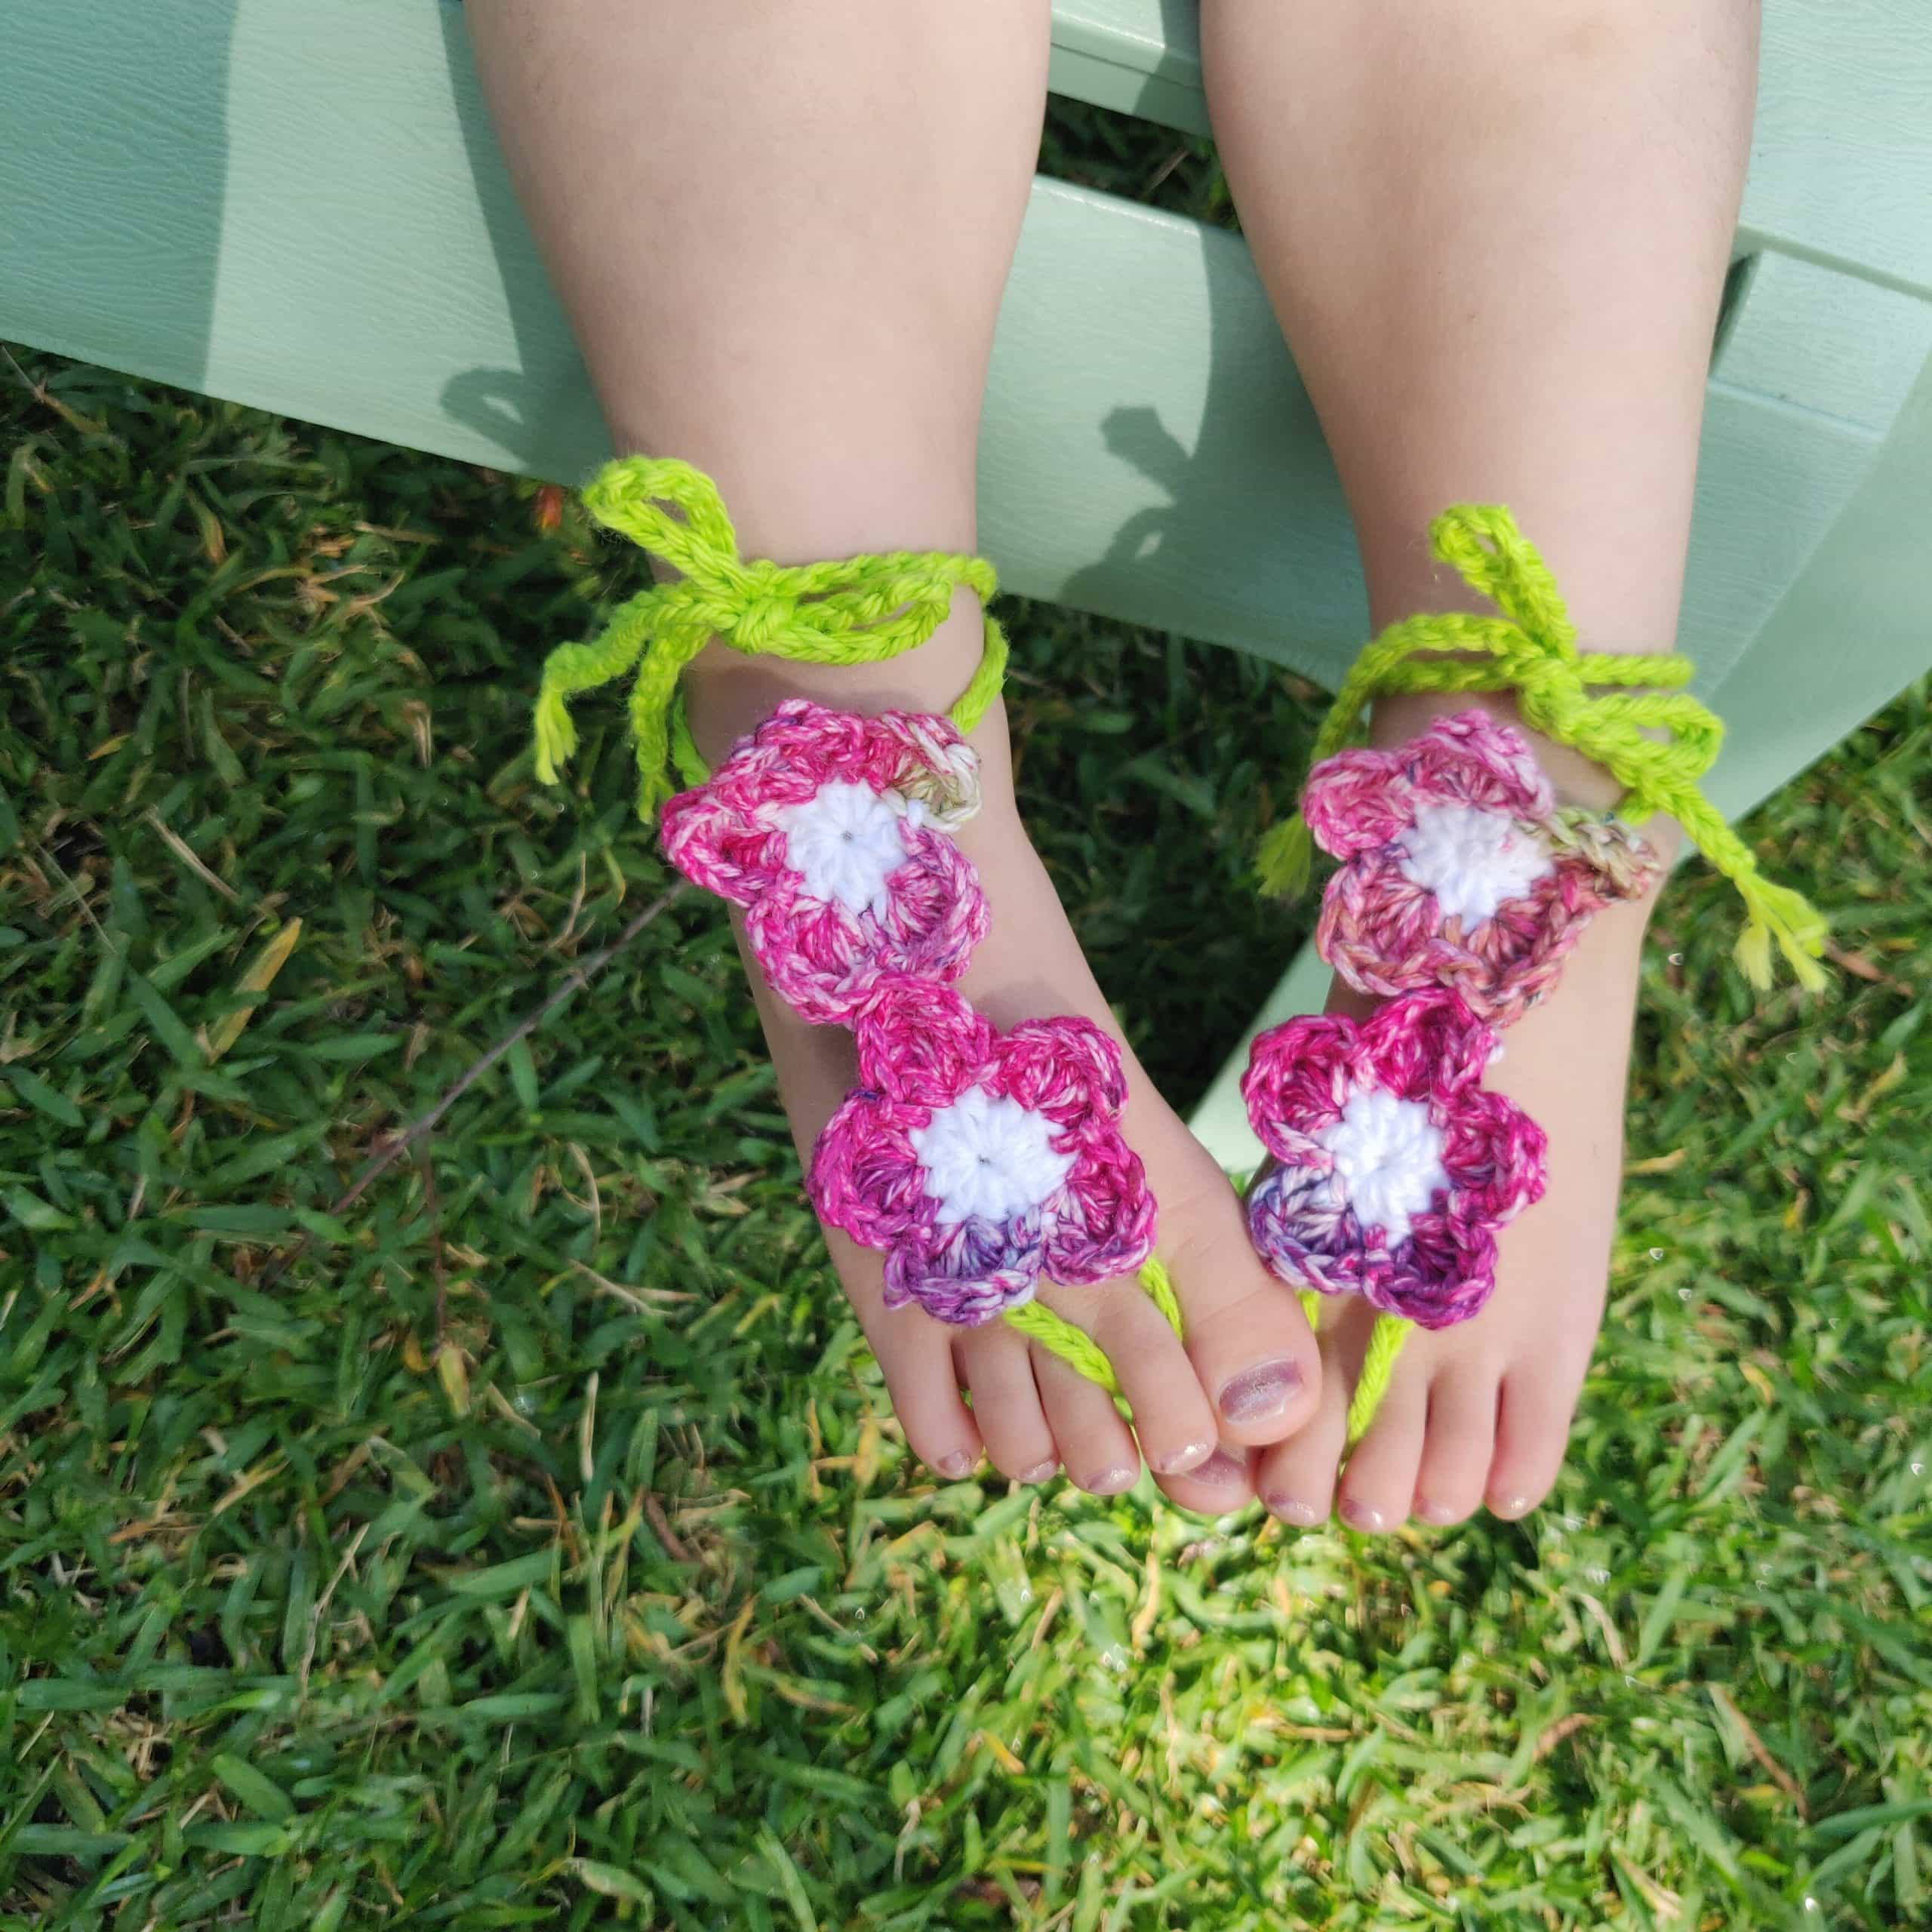 Crochet barefoot sandals made with colorful flowers and tied around the ankle.